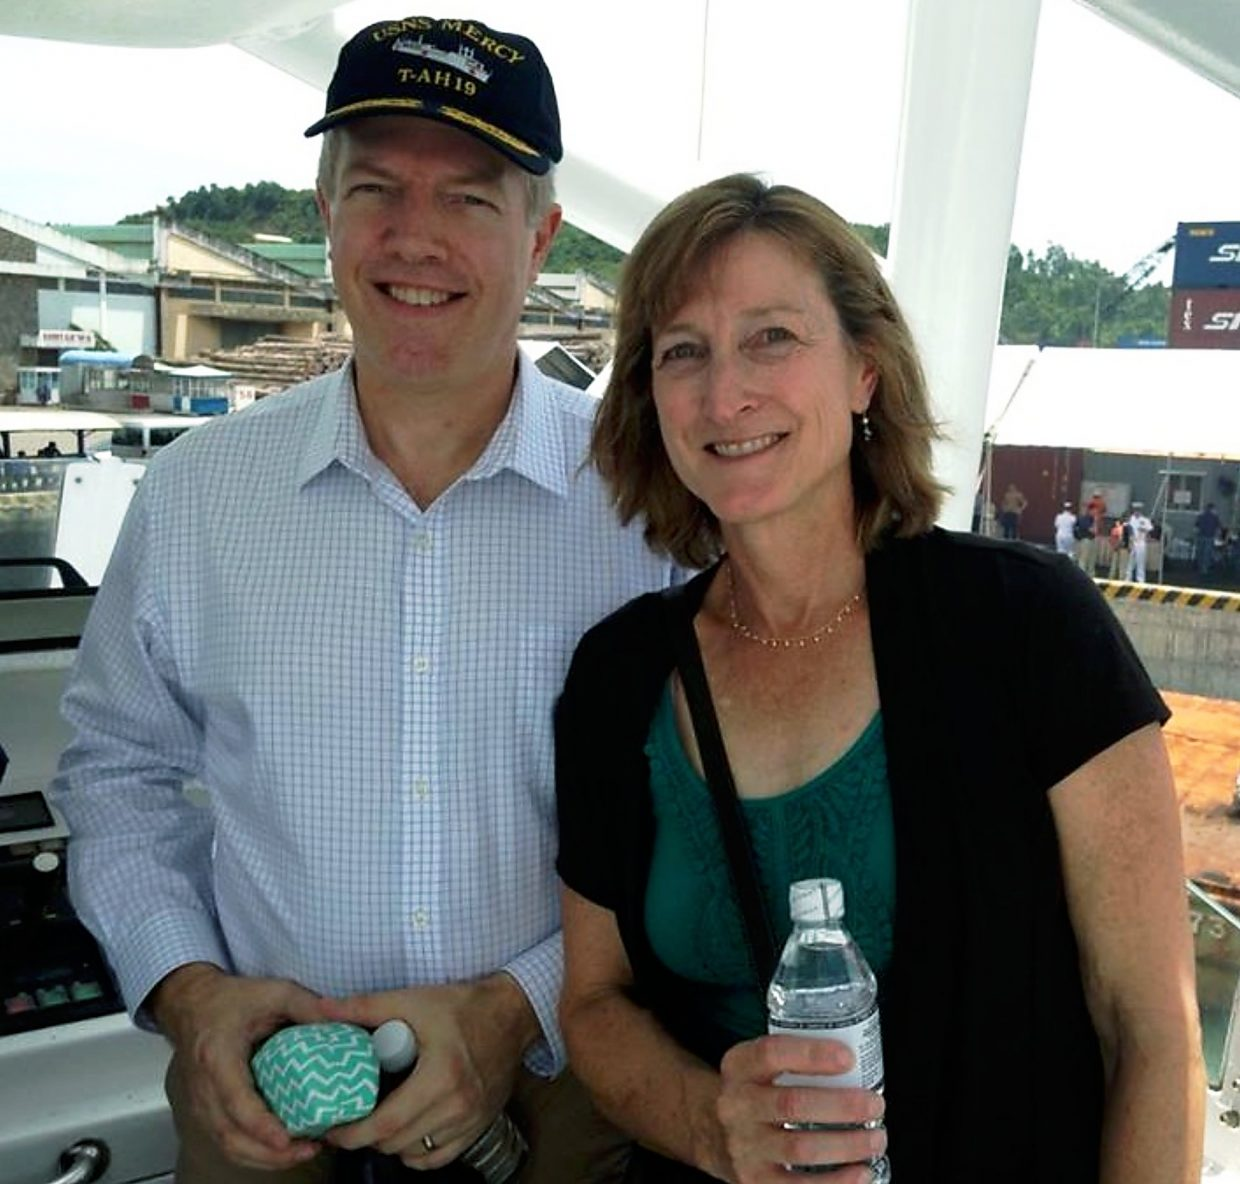 Alison Osius stands with her brother Ted Osius, the U.S. ambassador to Vietnam.